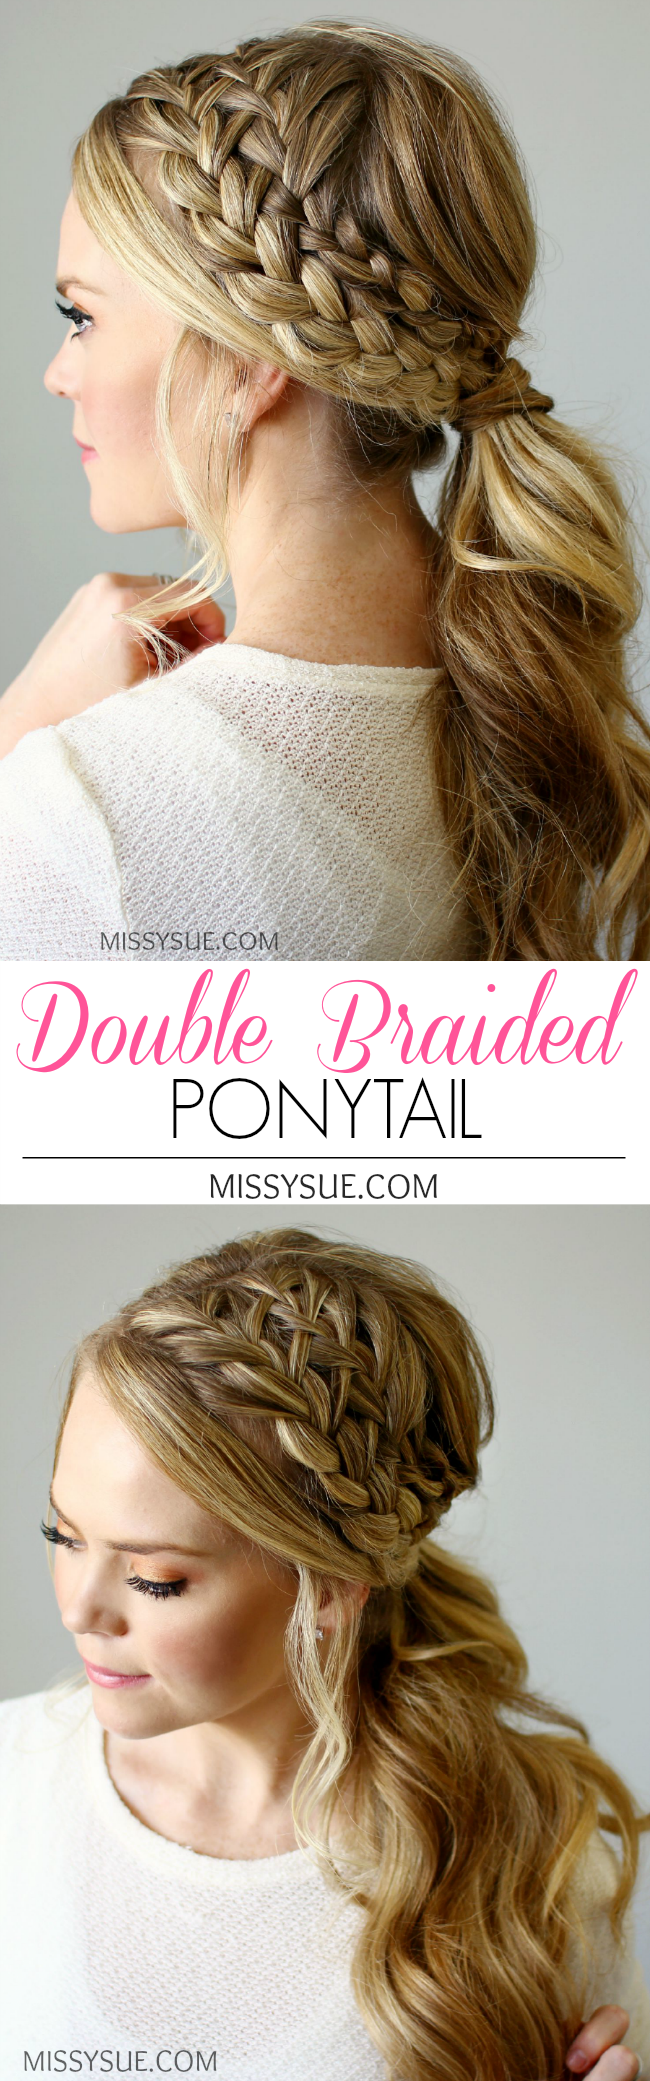 Double braided ponytail missy sue ponytail hair style and hair